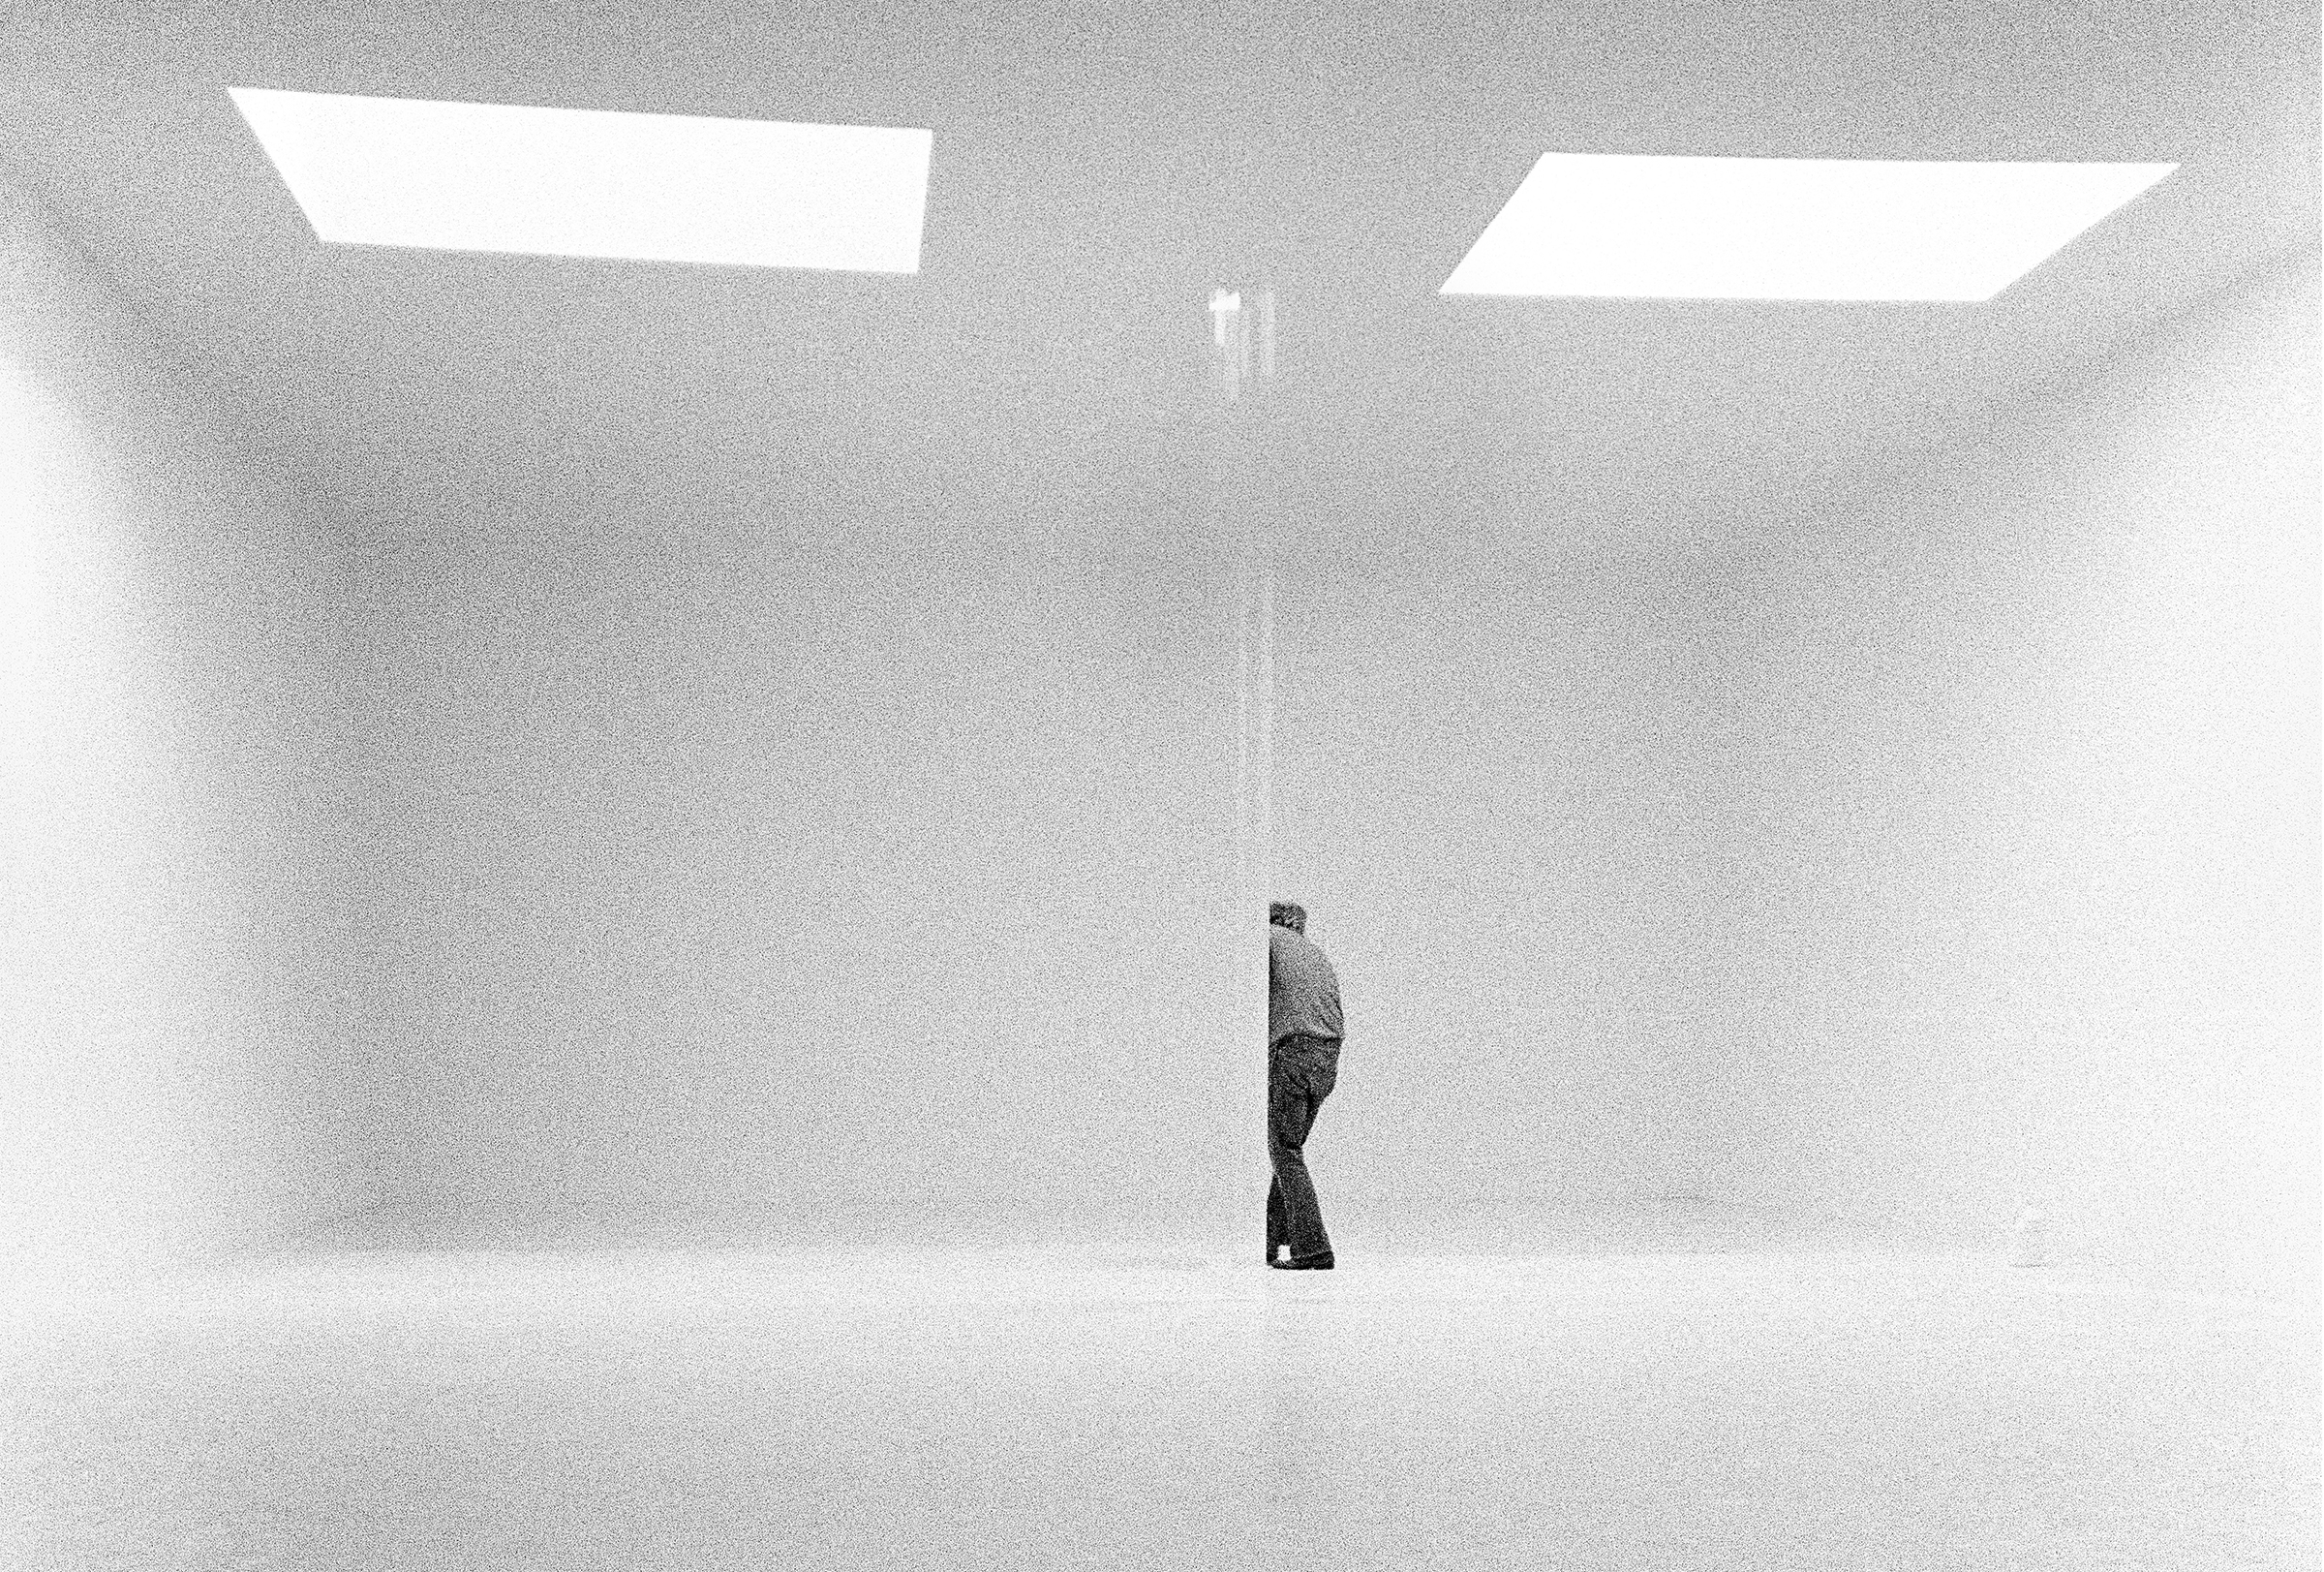 Robert Irwin in his studio, 1970.